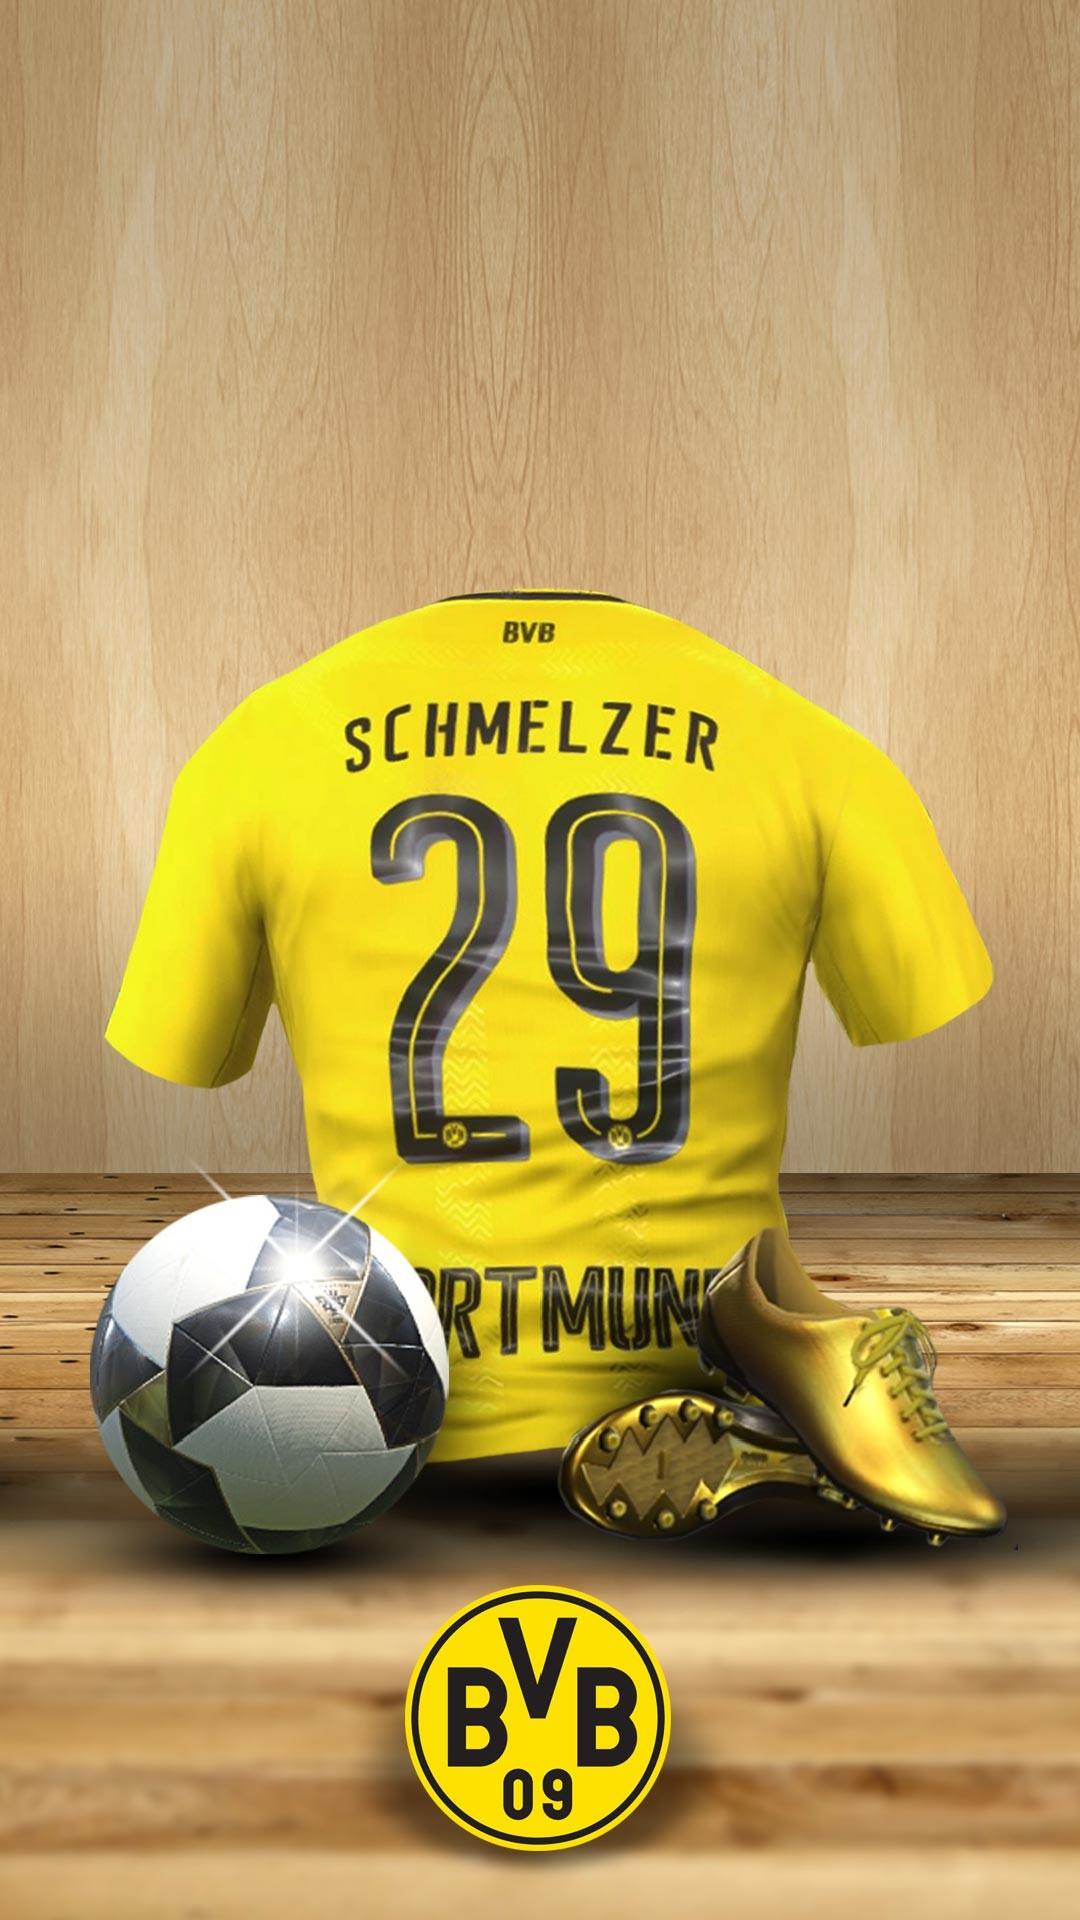 Schmelzer Pes 17 android, iphone wallpaper, mobile background